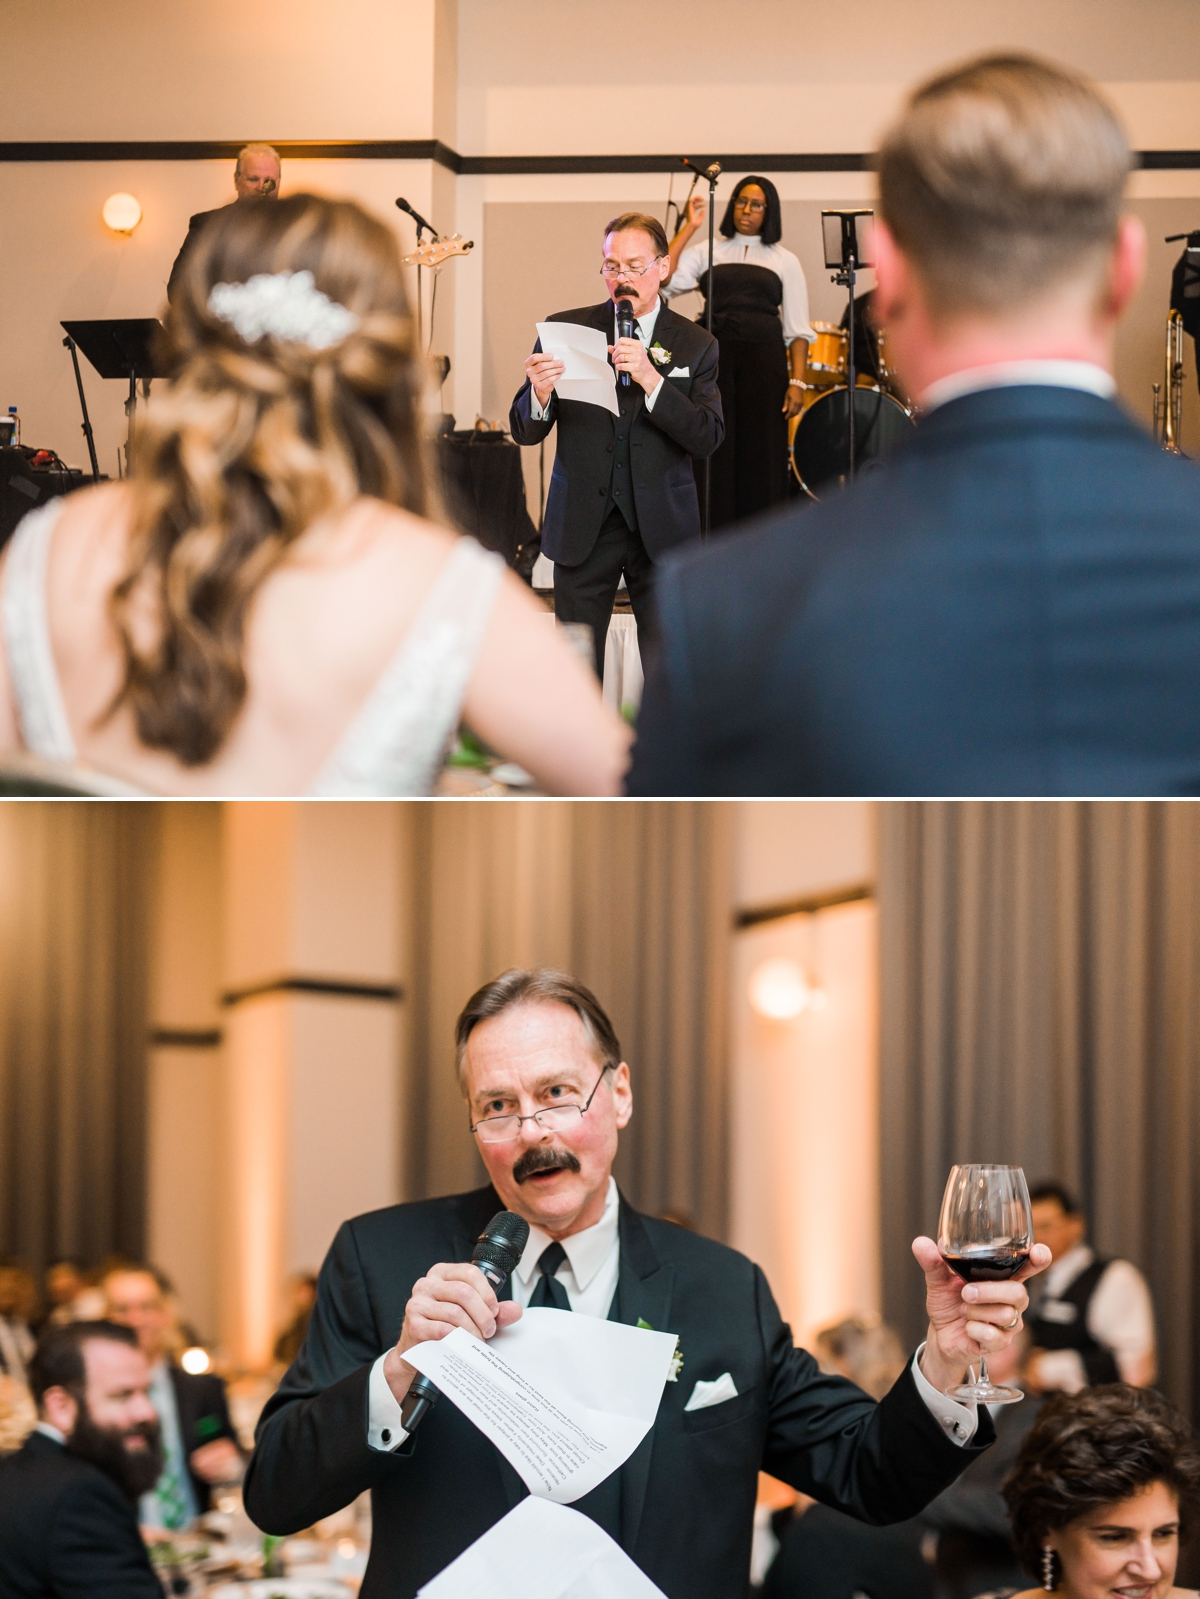 Father of the Bride Toast at Houston Hotel Wedding